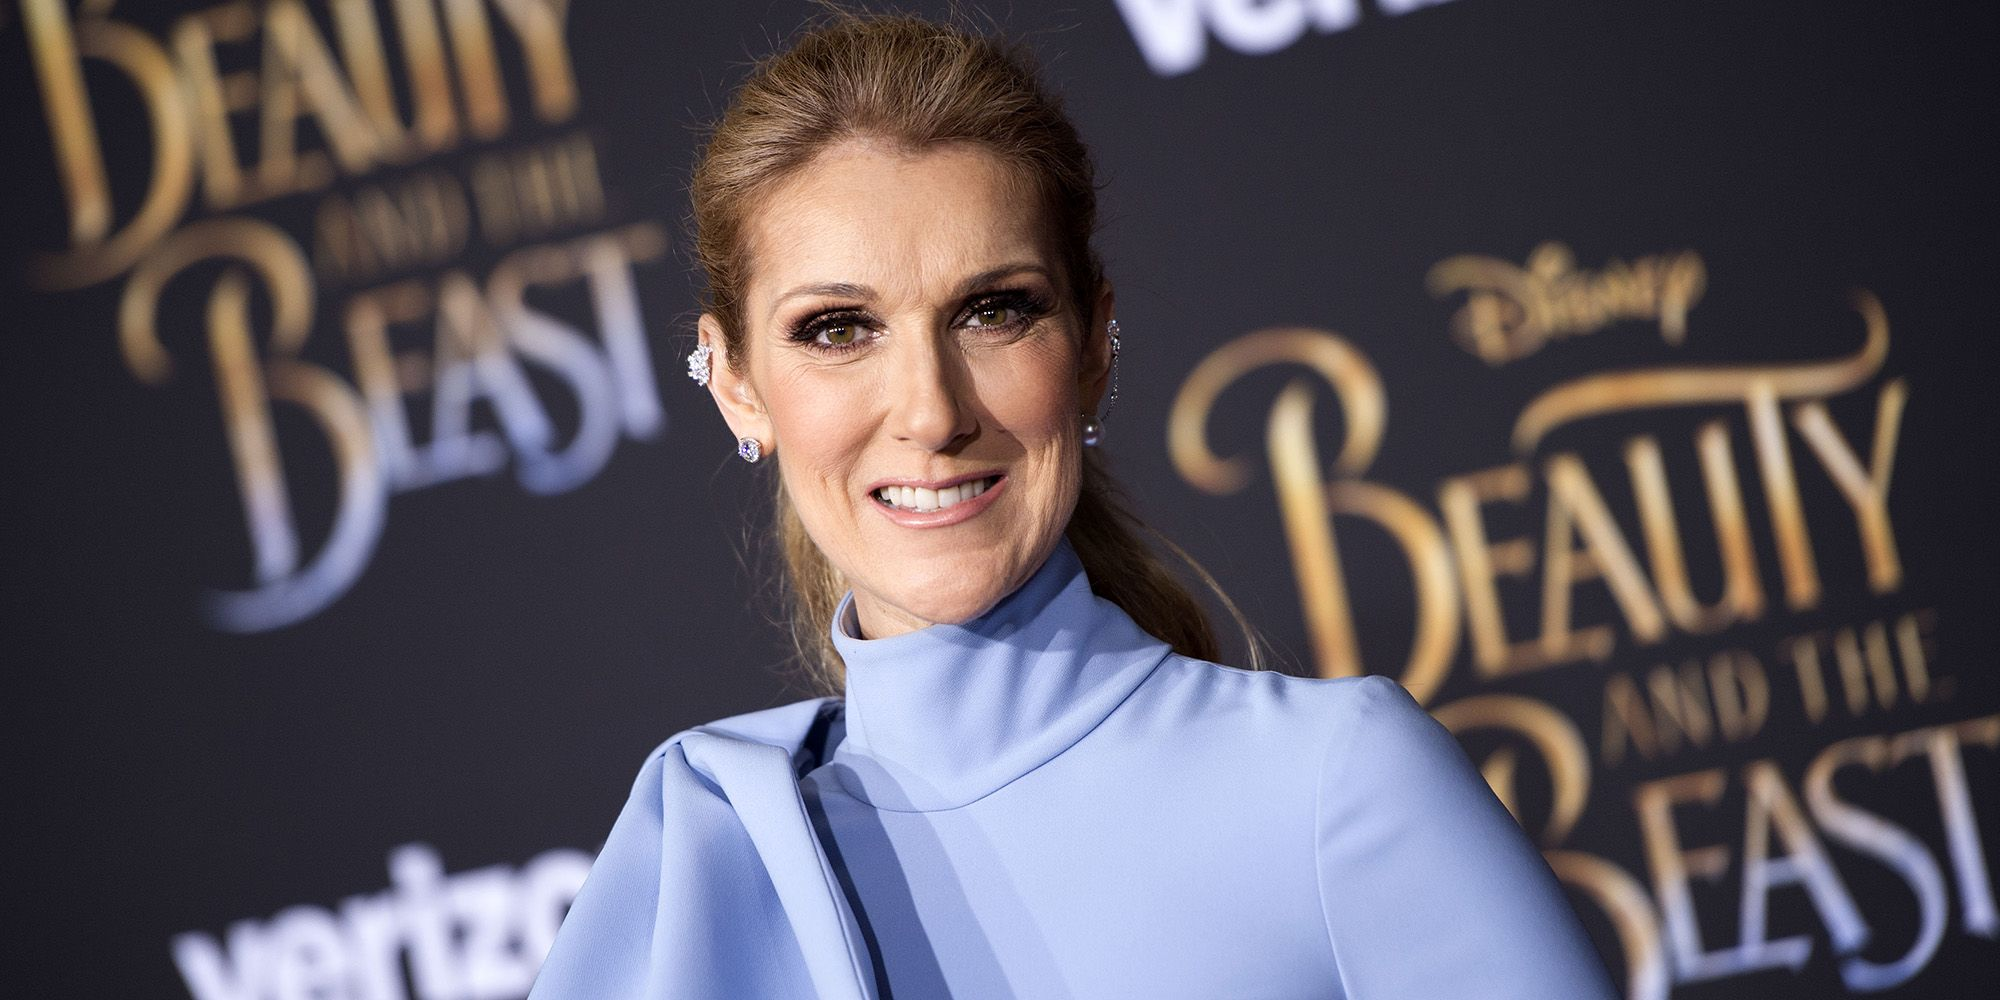 Celine Dion Returns To Beauty And The Beast With A New Song How Does A Moment Last Forever Beauty And The Beast Song